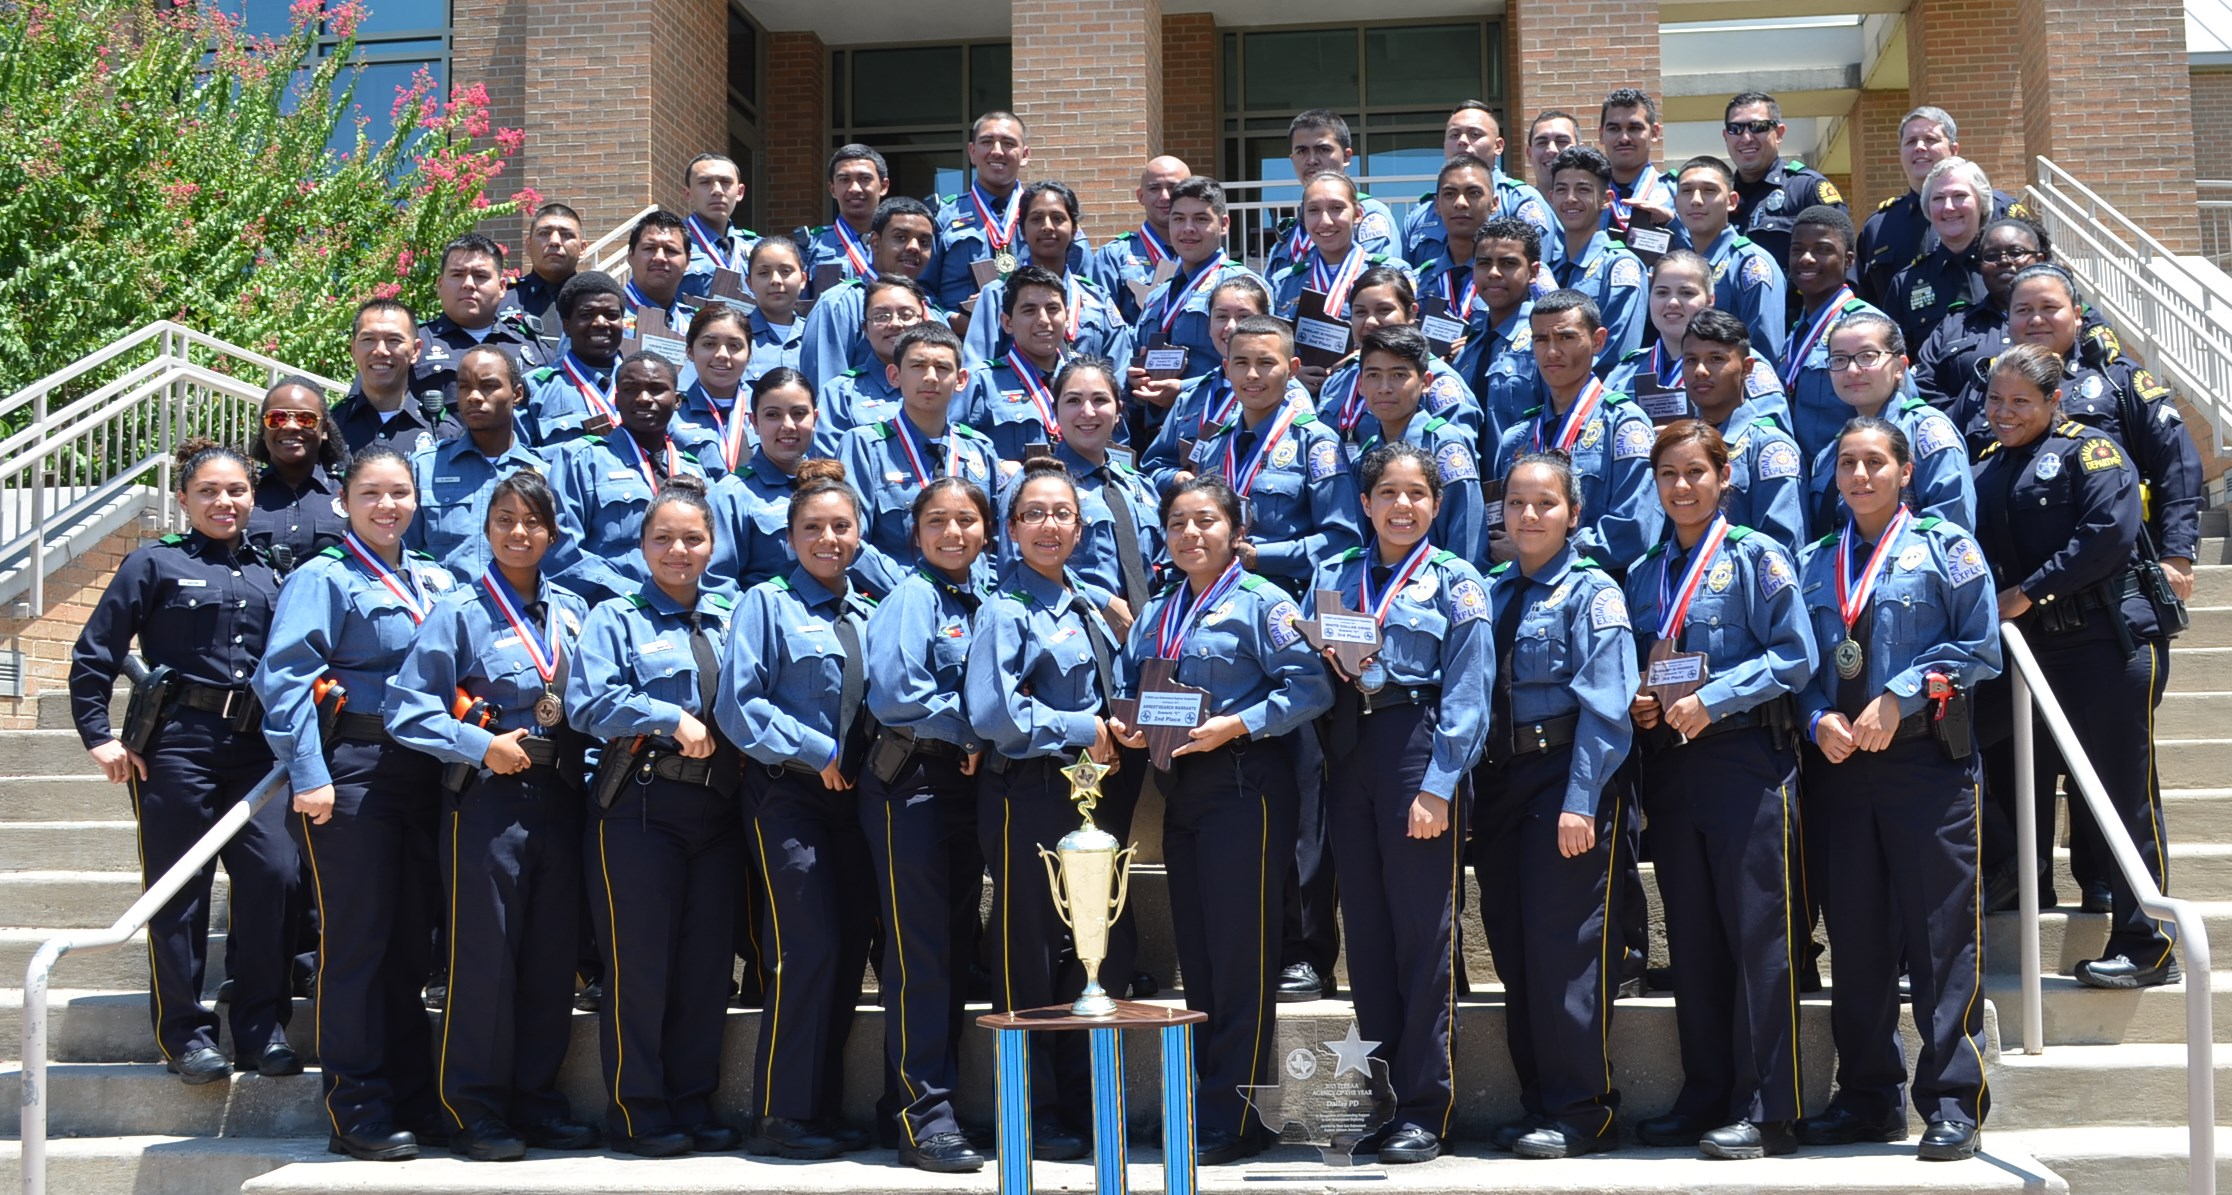 2015 TLEEAA Agency Award Goes To the Dallas Police Explorers!! | DPD